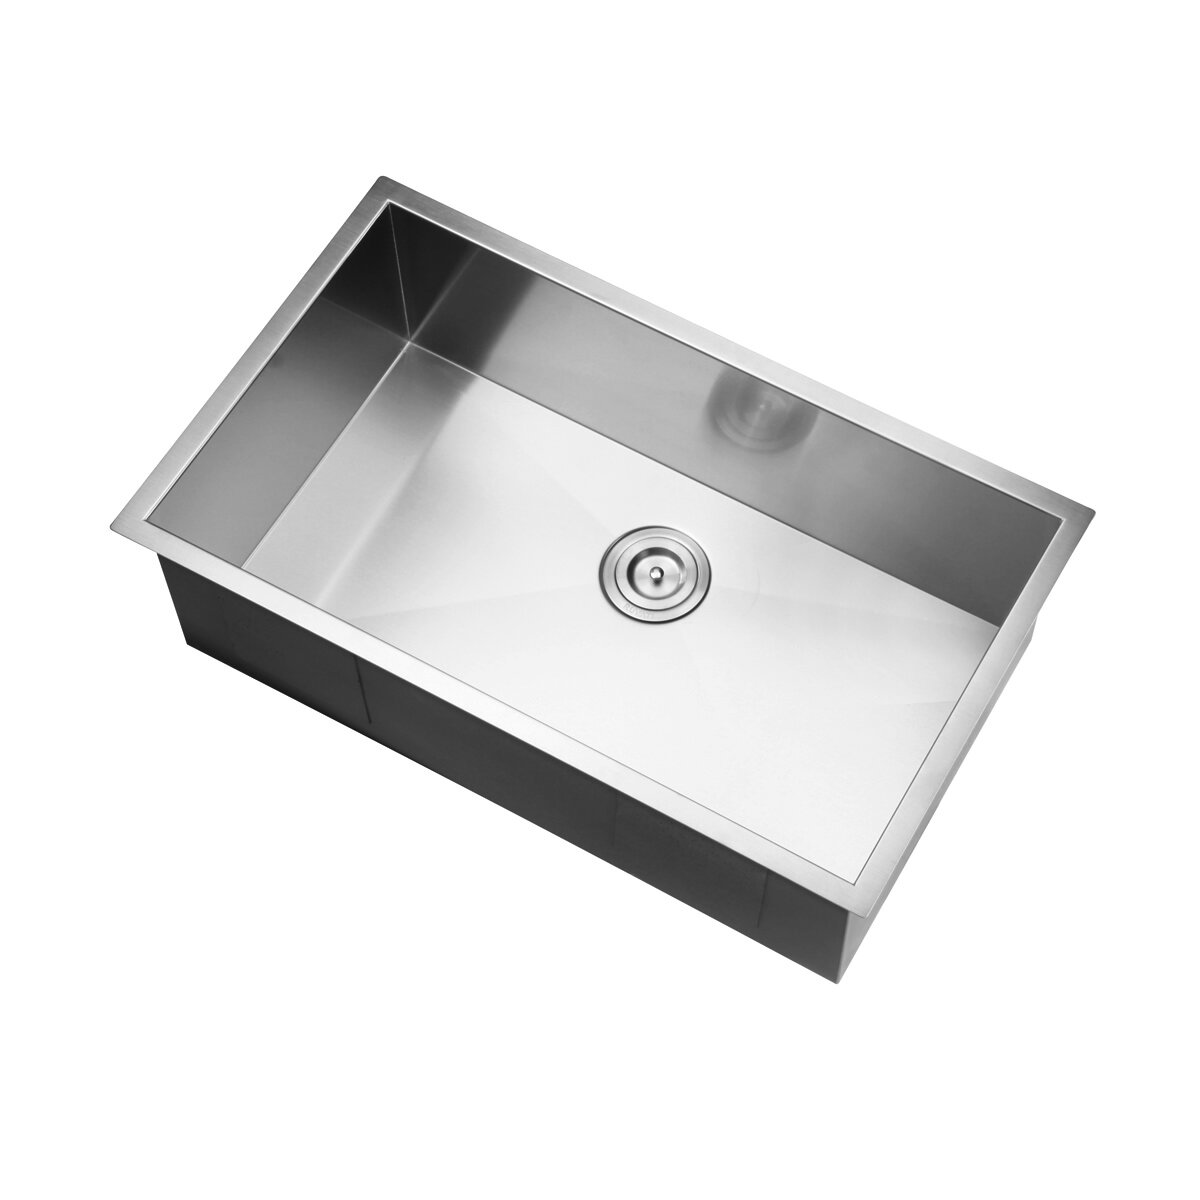 nesta 32 x 19 undermount single bowl kitchen sink - White Single Basin Kitchen Sink